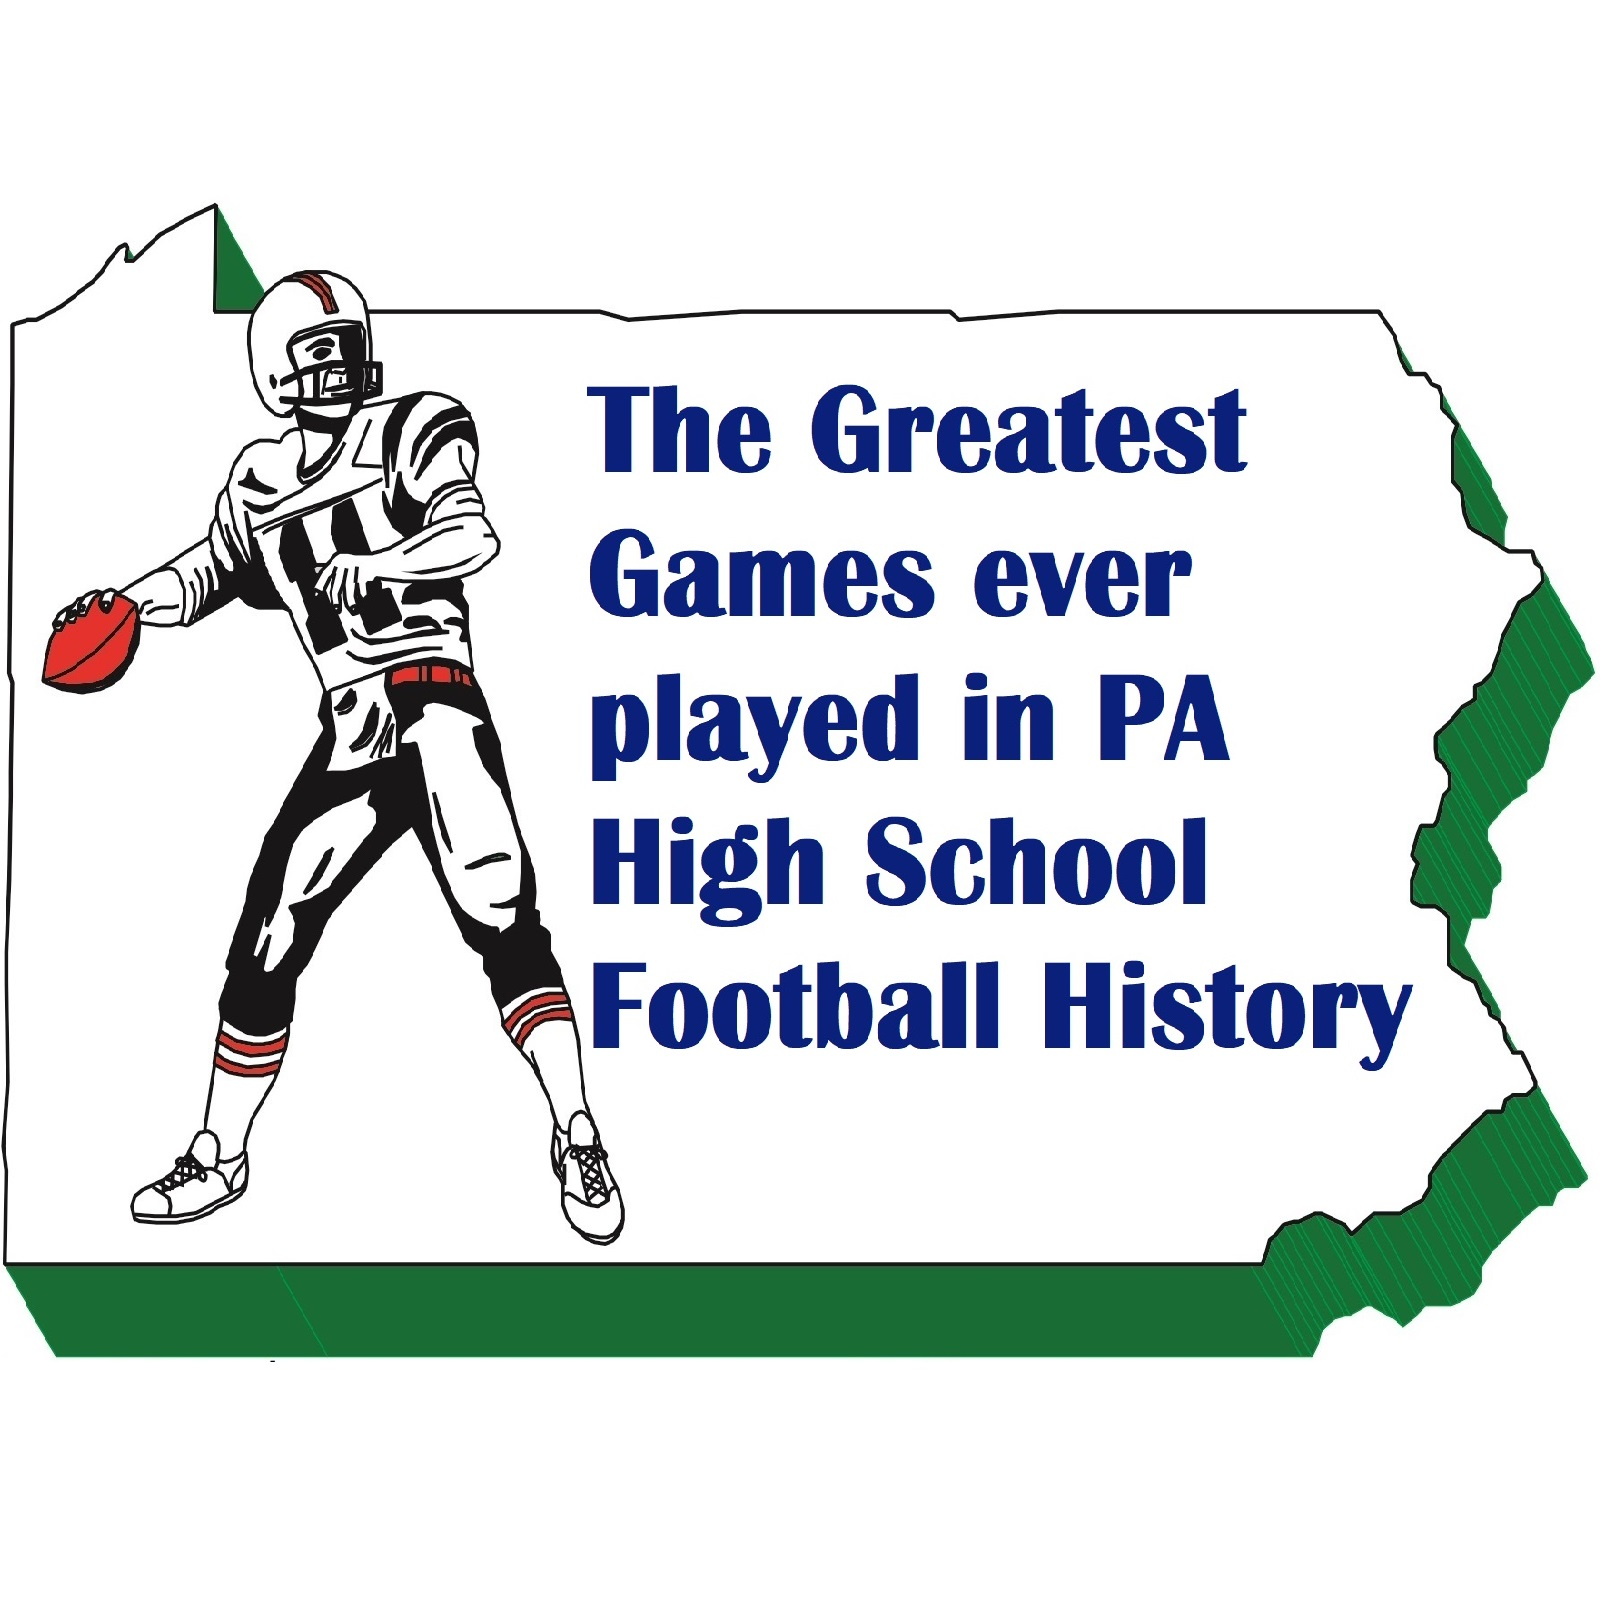 The Greatest Games Ever Played in PA High School Football History